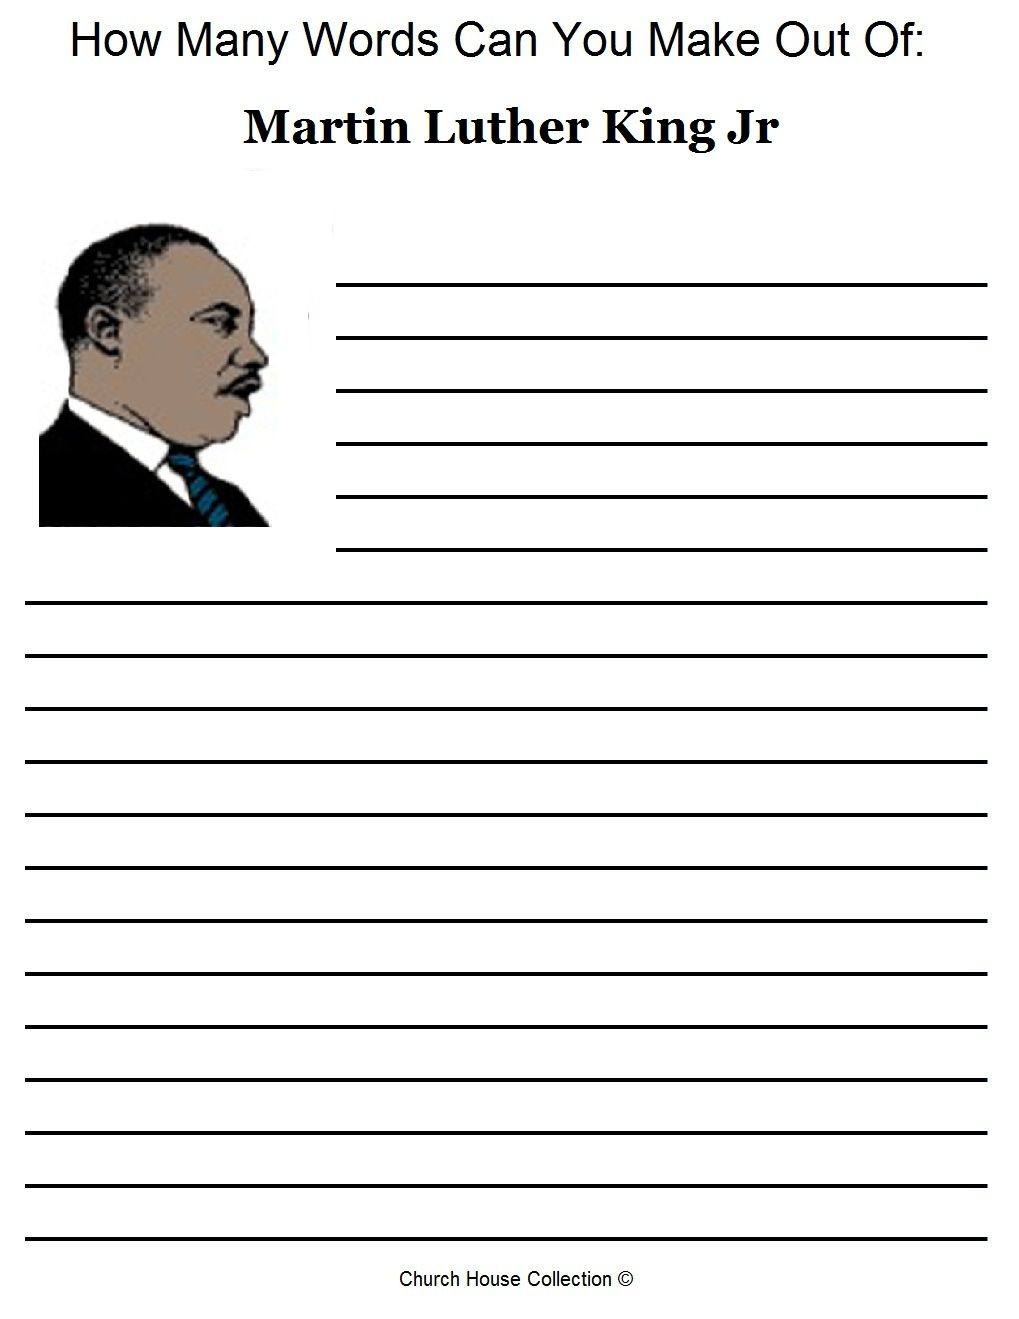 worksheet Mlk Worksheets free martin luther king jr worksheets how many words can you make out of martin